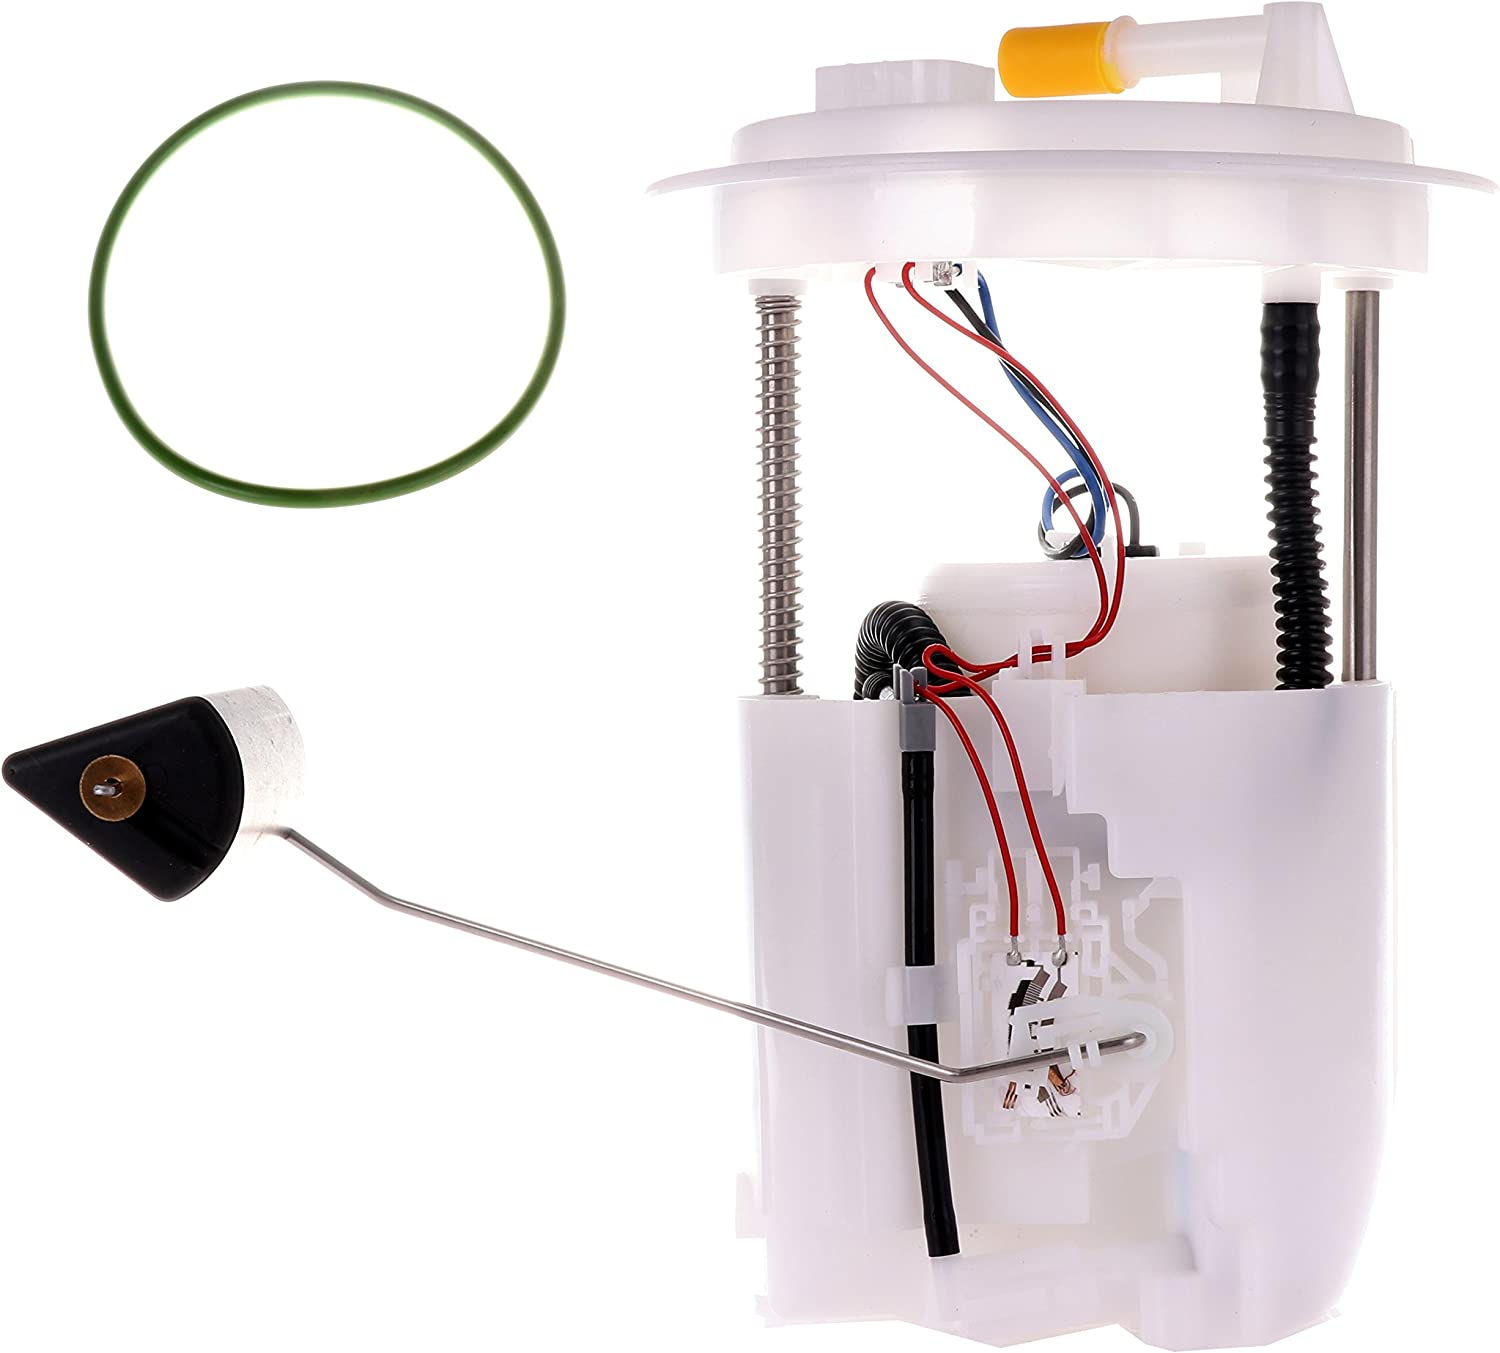 ROADFAR Fuel Pump Assembly Electrical Module with Sending Unit Compatible with Ram 3500 L6-6.7L 2011 2012 2013 2014 2015 2016 2017 2018 E7277M